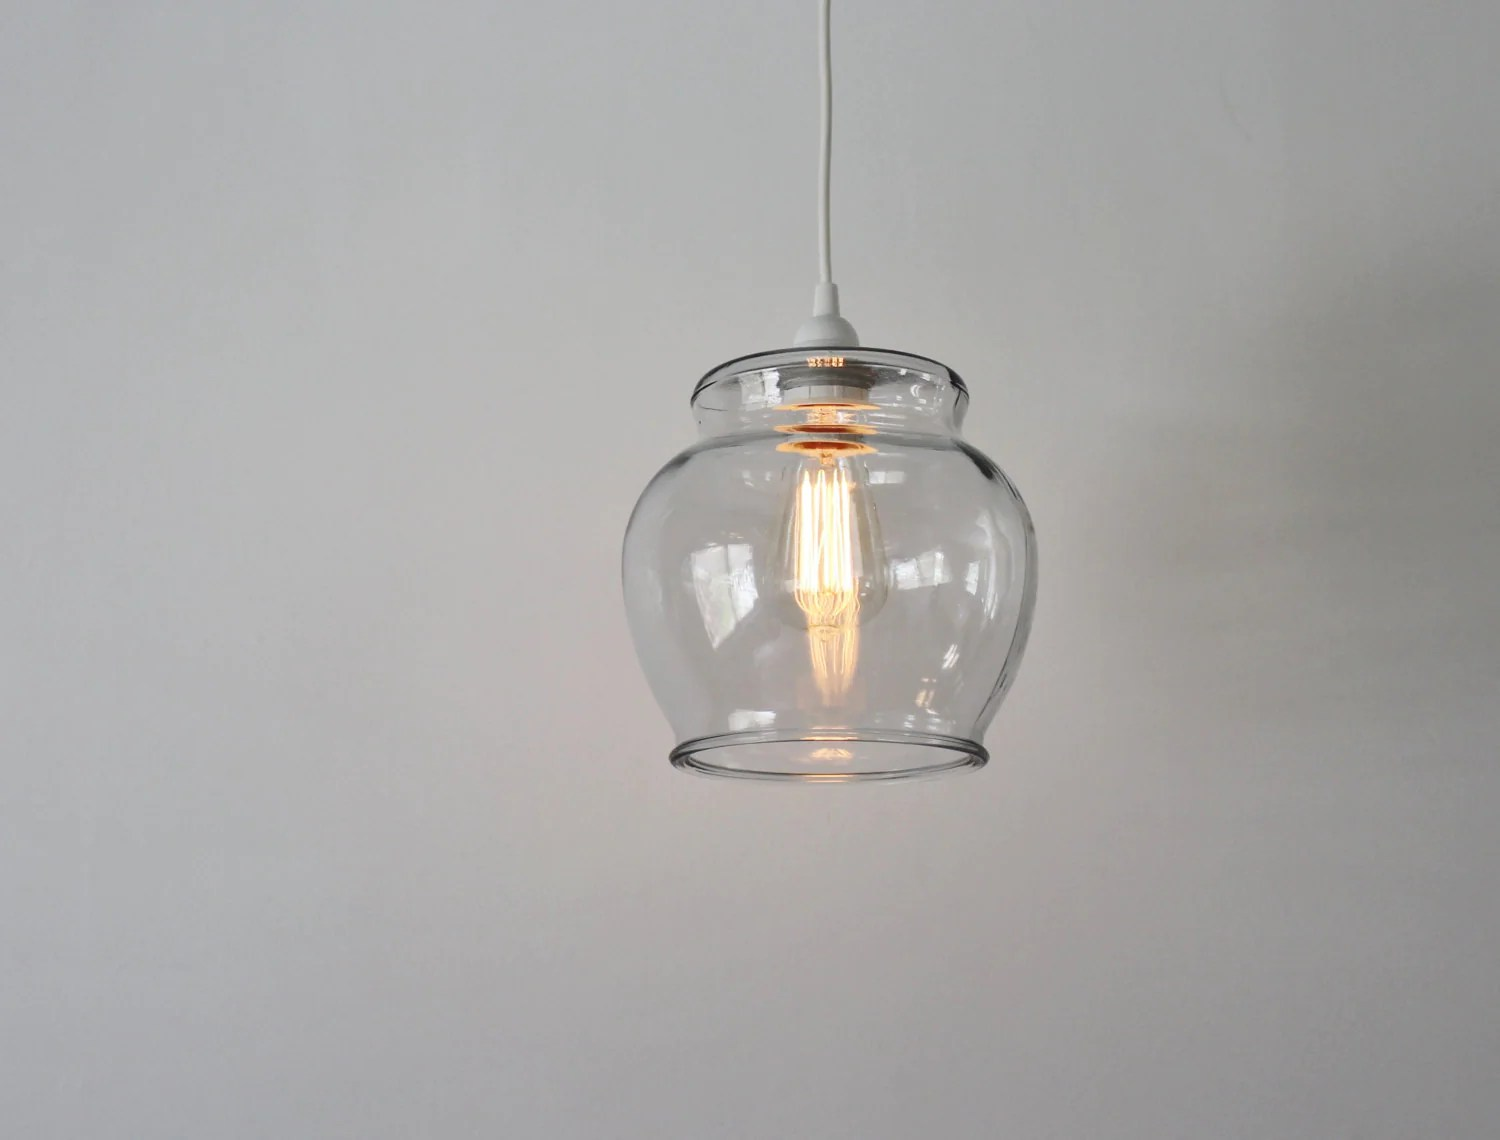 Glass Lamp Bowl Fish Bowl Pendant Lamp Hanging Pendant Lamp Made From A Vintage Glass Fish Bowl Terrarium Bootsngus Upcycled Lighting Fixture